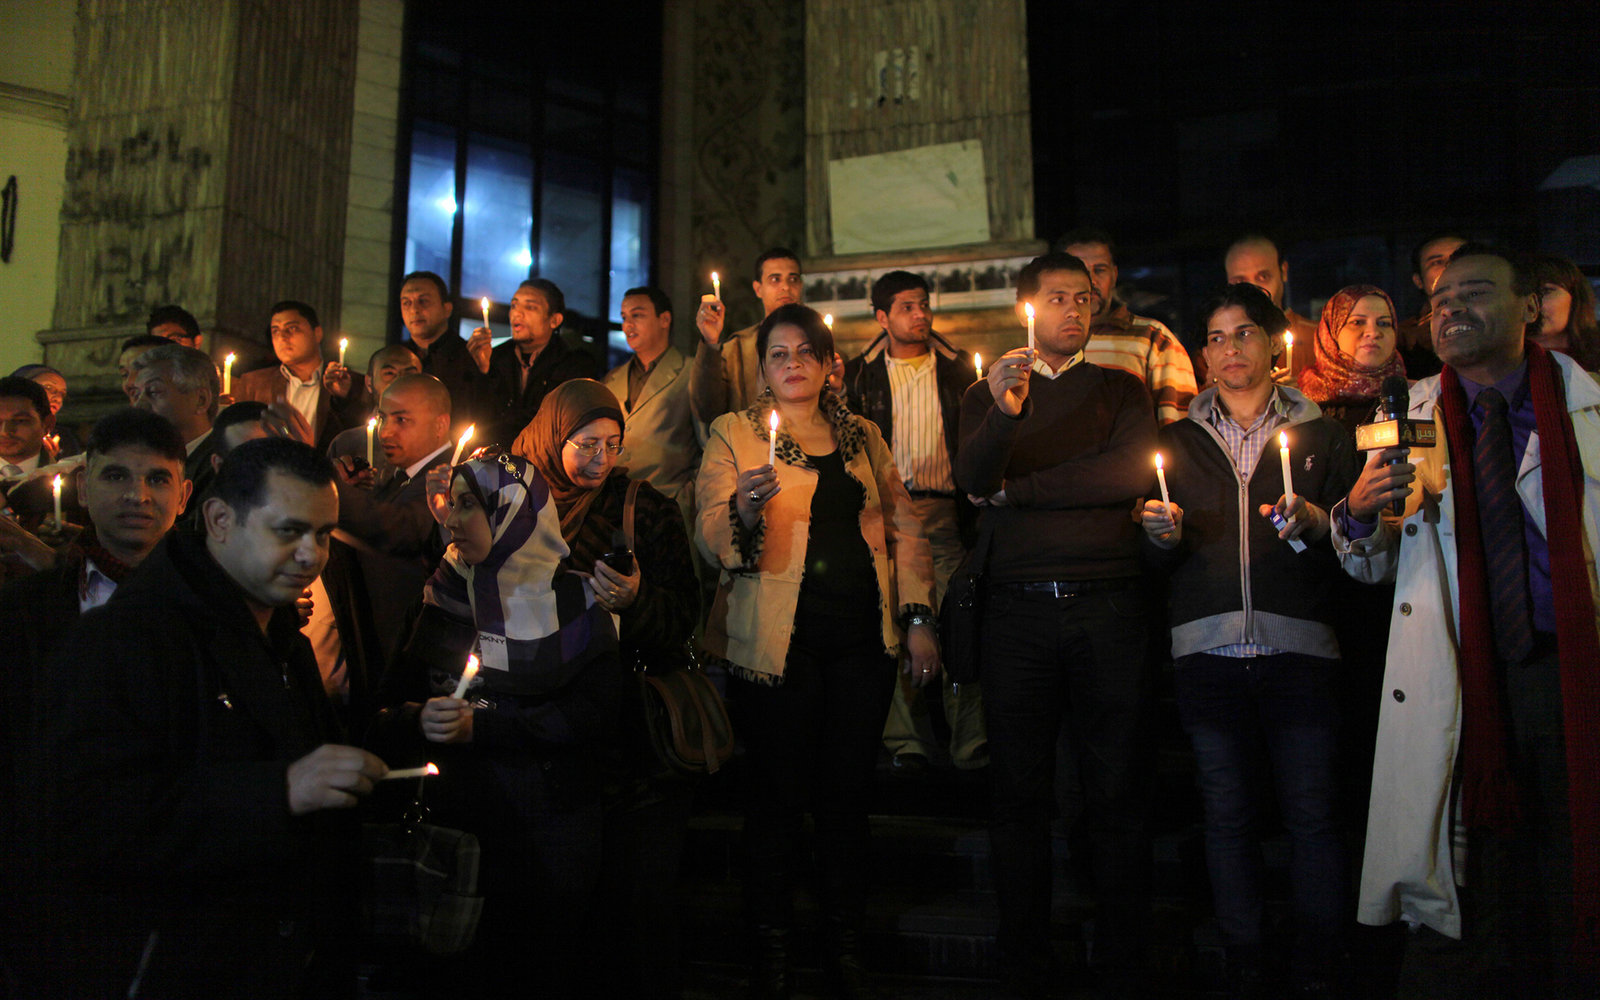 D1NDGG Dec. 31, 2012 - Cairo, Cairo, Egypt - Egyptian activists hold candles as they take part in a rally on the anniversary of the attack on the All Saints Church (al-Qiddissine) in the city of Alexandria two years ago, as the gather on new Year's eve in